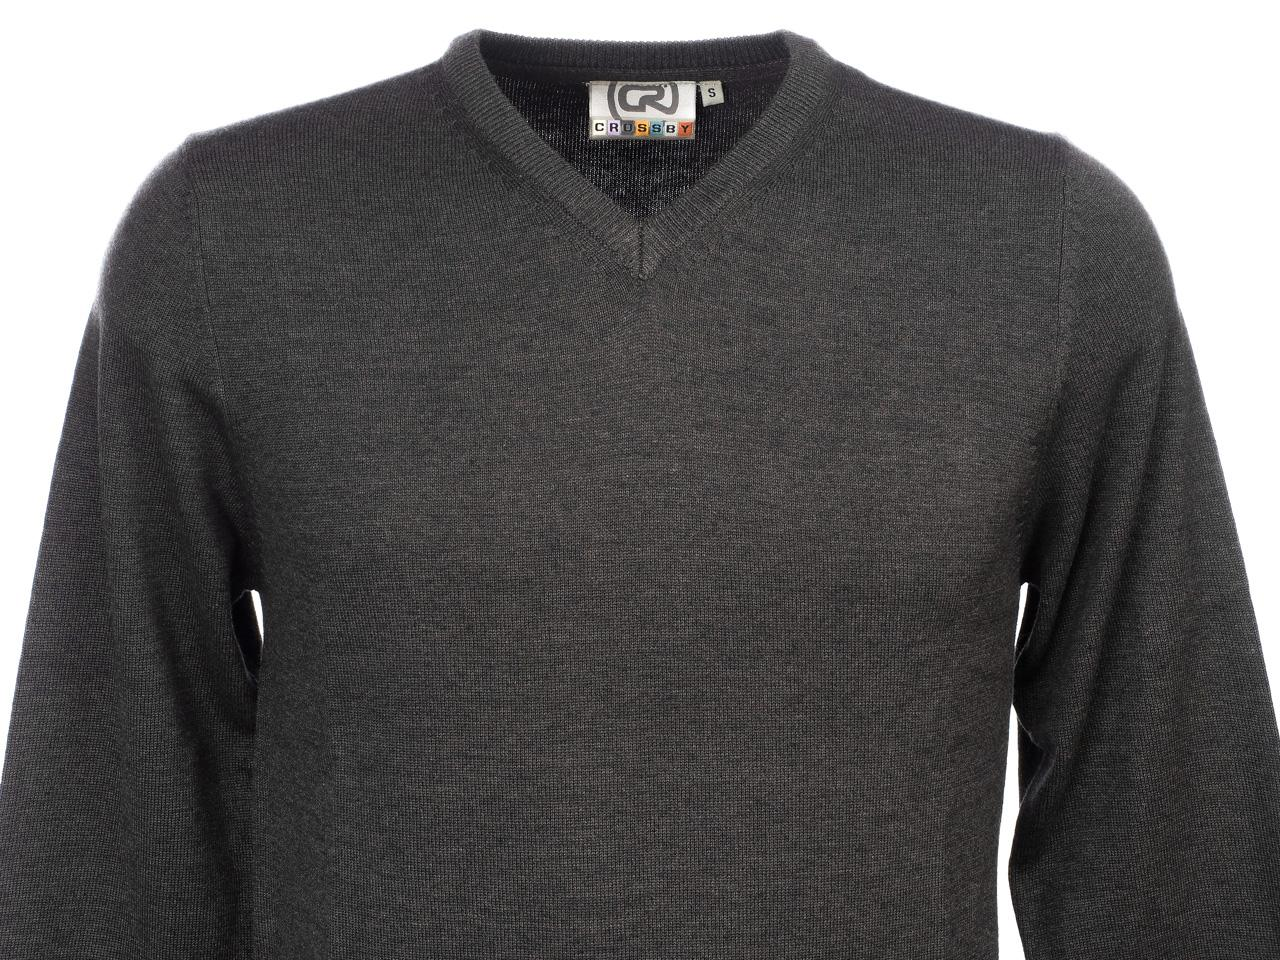 Sweater-Crossby-Twitt-Anc-V-Neck-Sweater-Grey-55732-New thumbnail 2